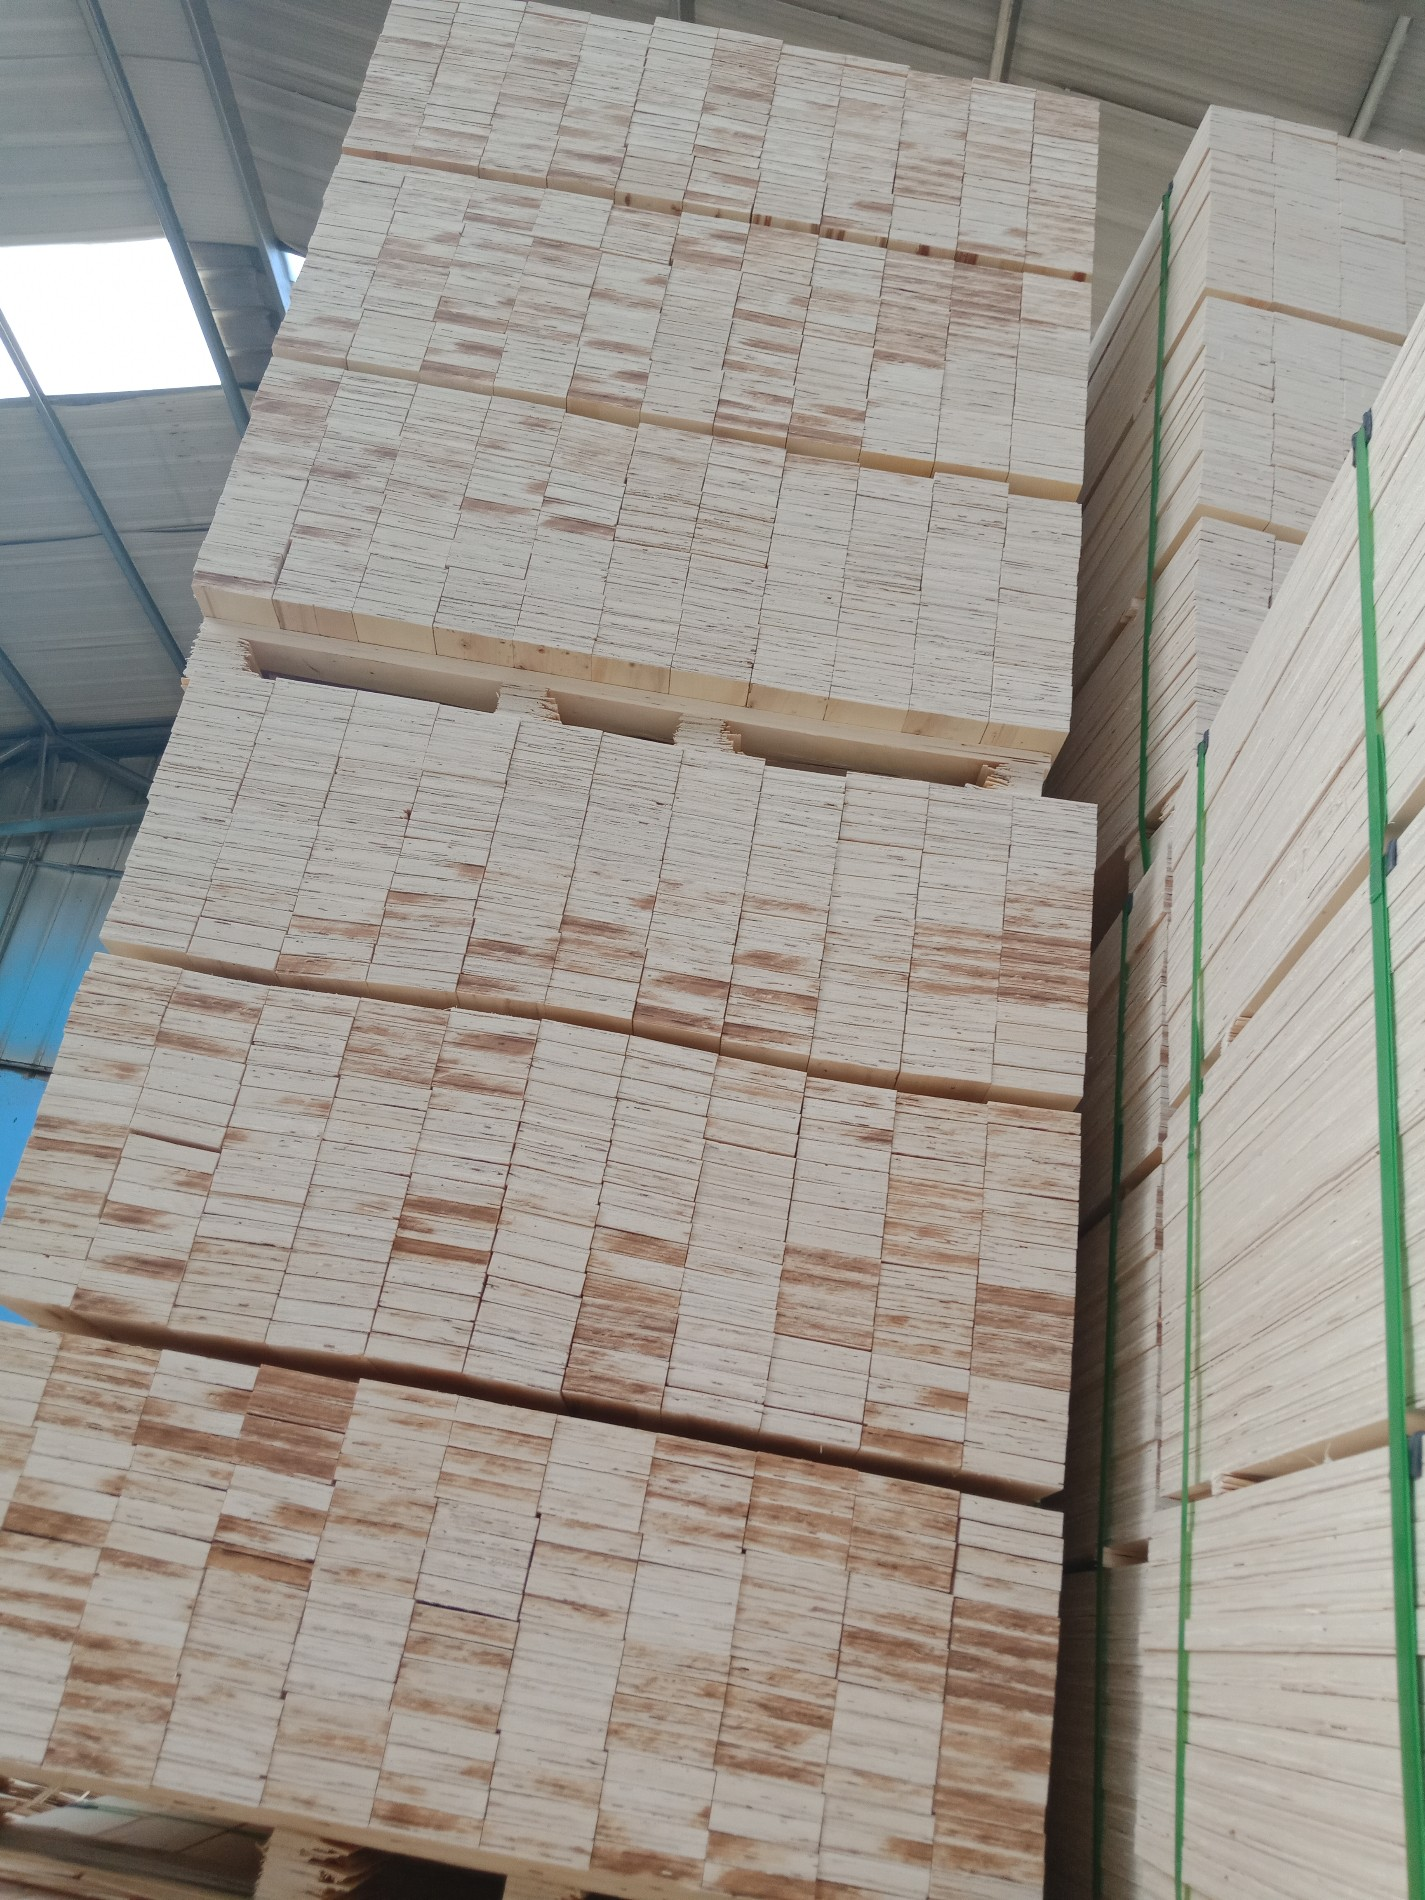 Waterproof LVL Timber Building Beam Manufacturers, Waterproof LVL Timber Building Beam Factory, Supply Waterproof LVL Timber Building Beam